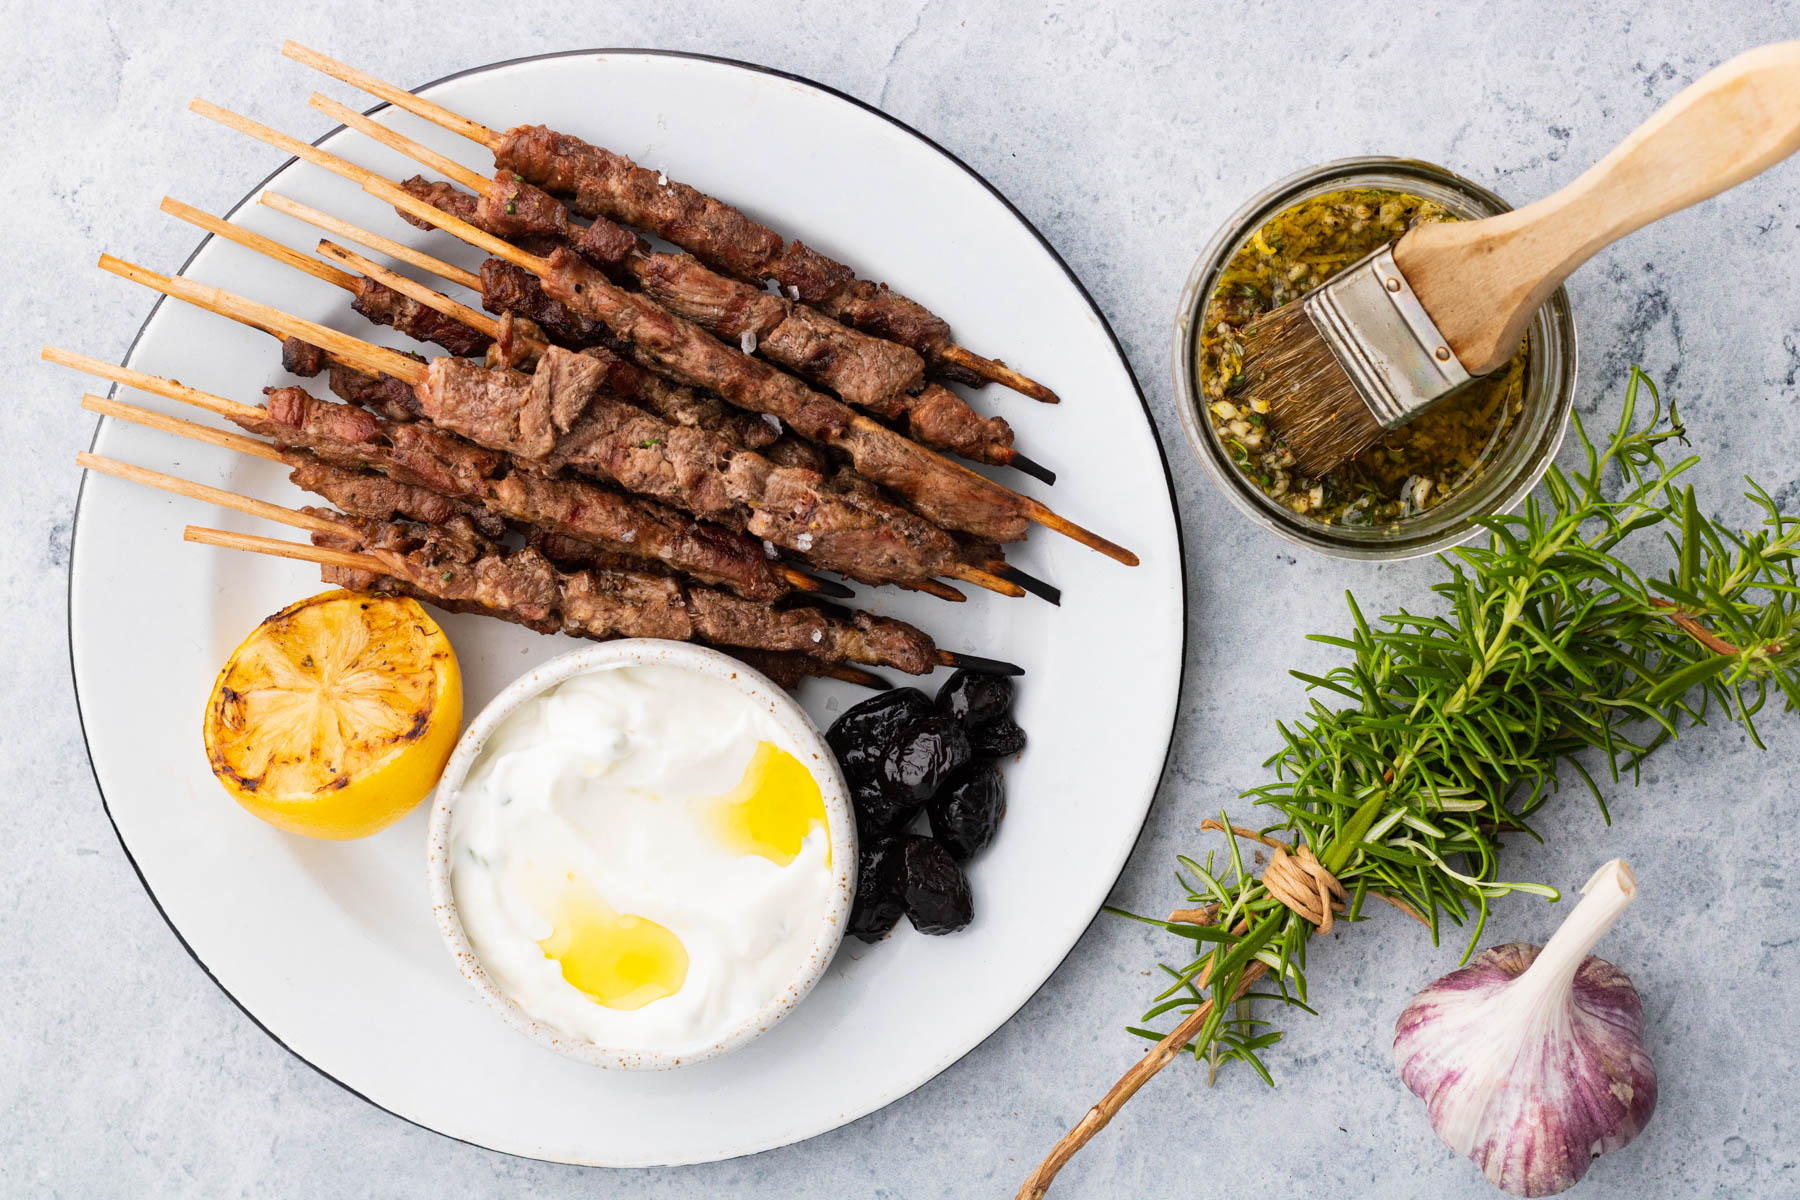 Grilled spiedini on a white platter with tzatziki sauce, grilled lemon half and prunes